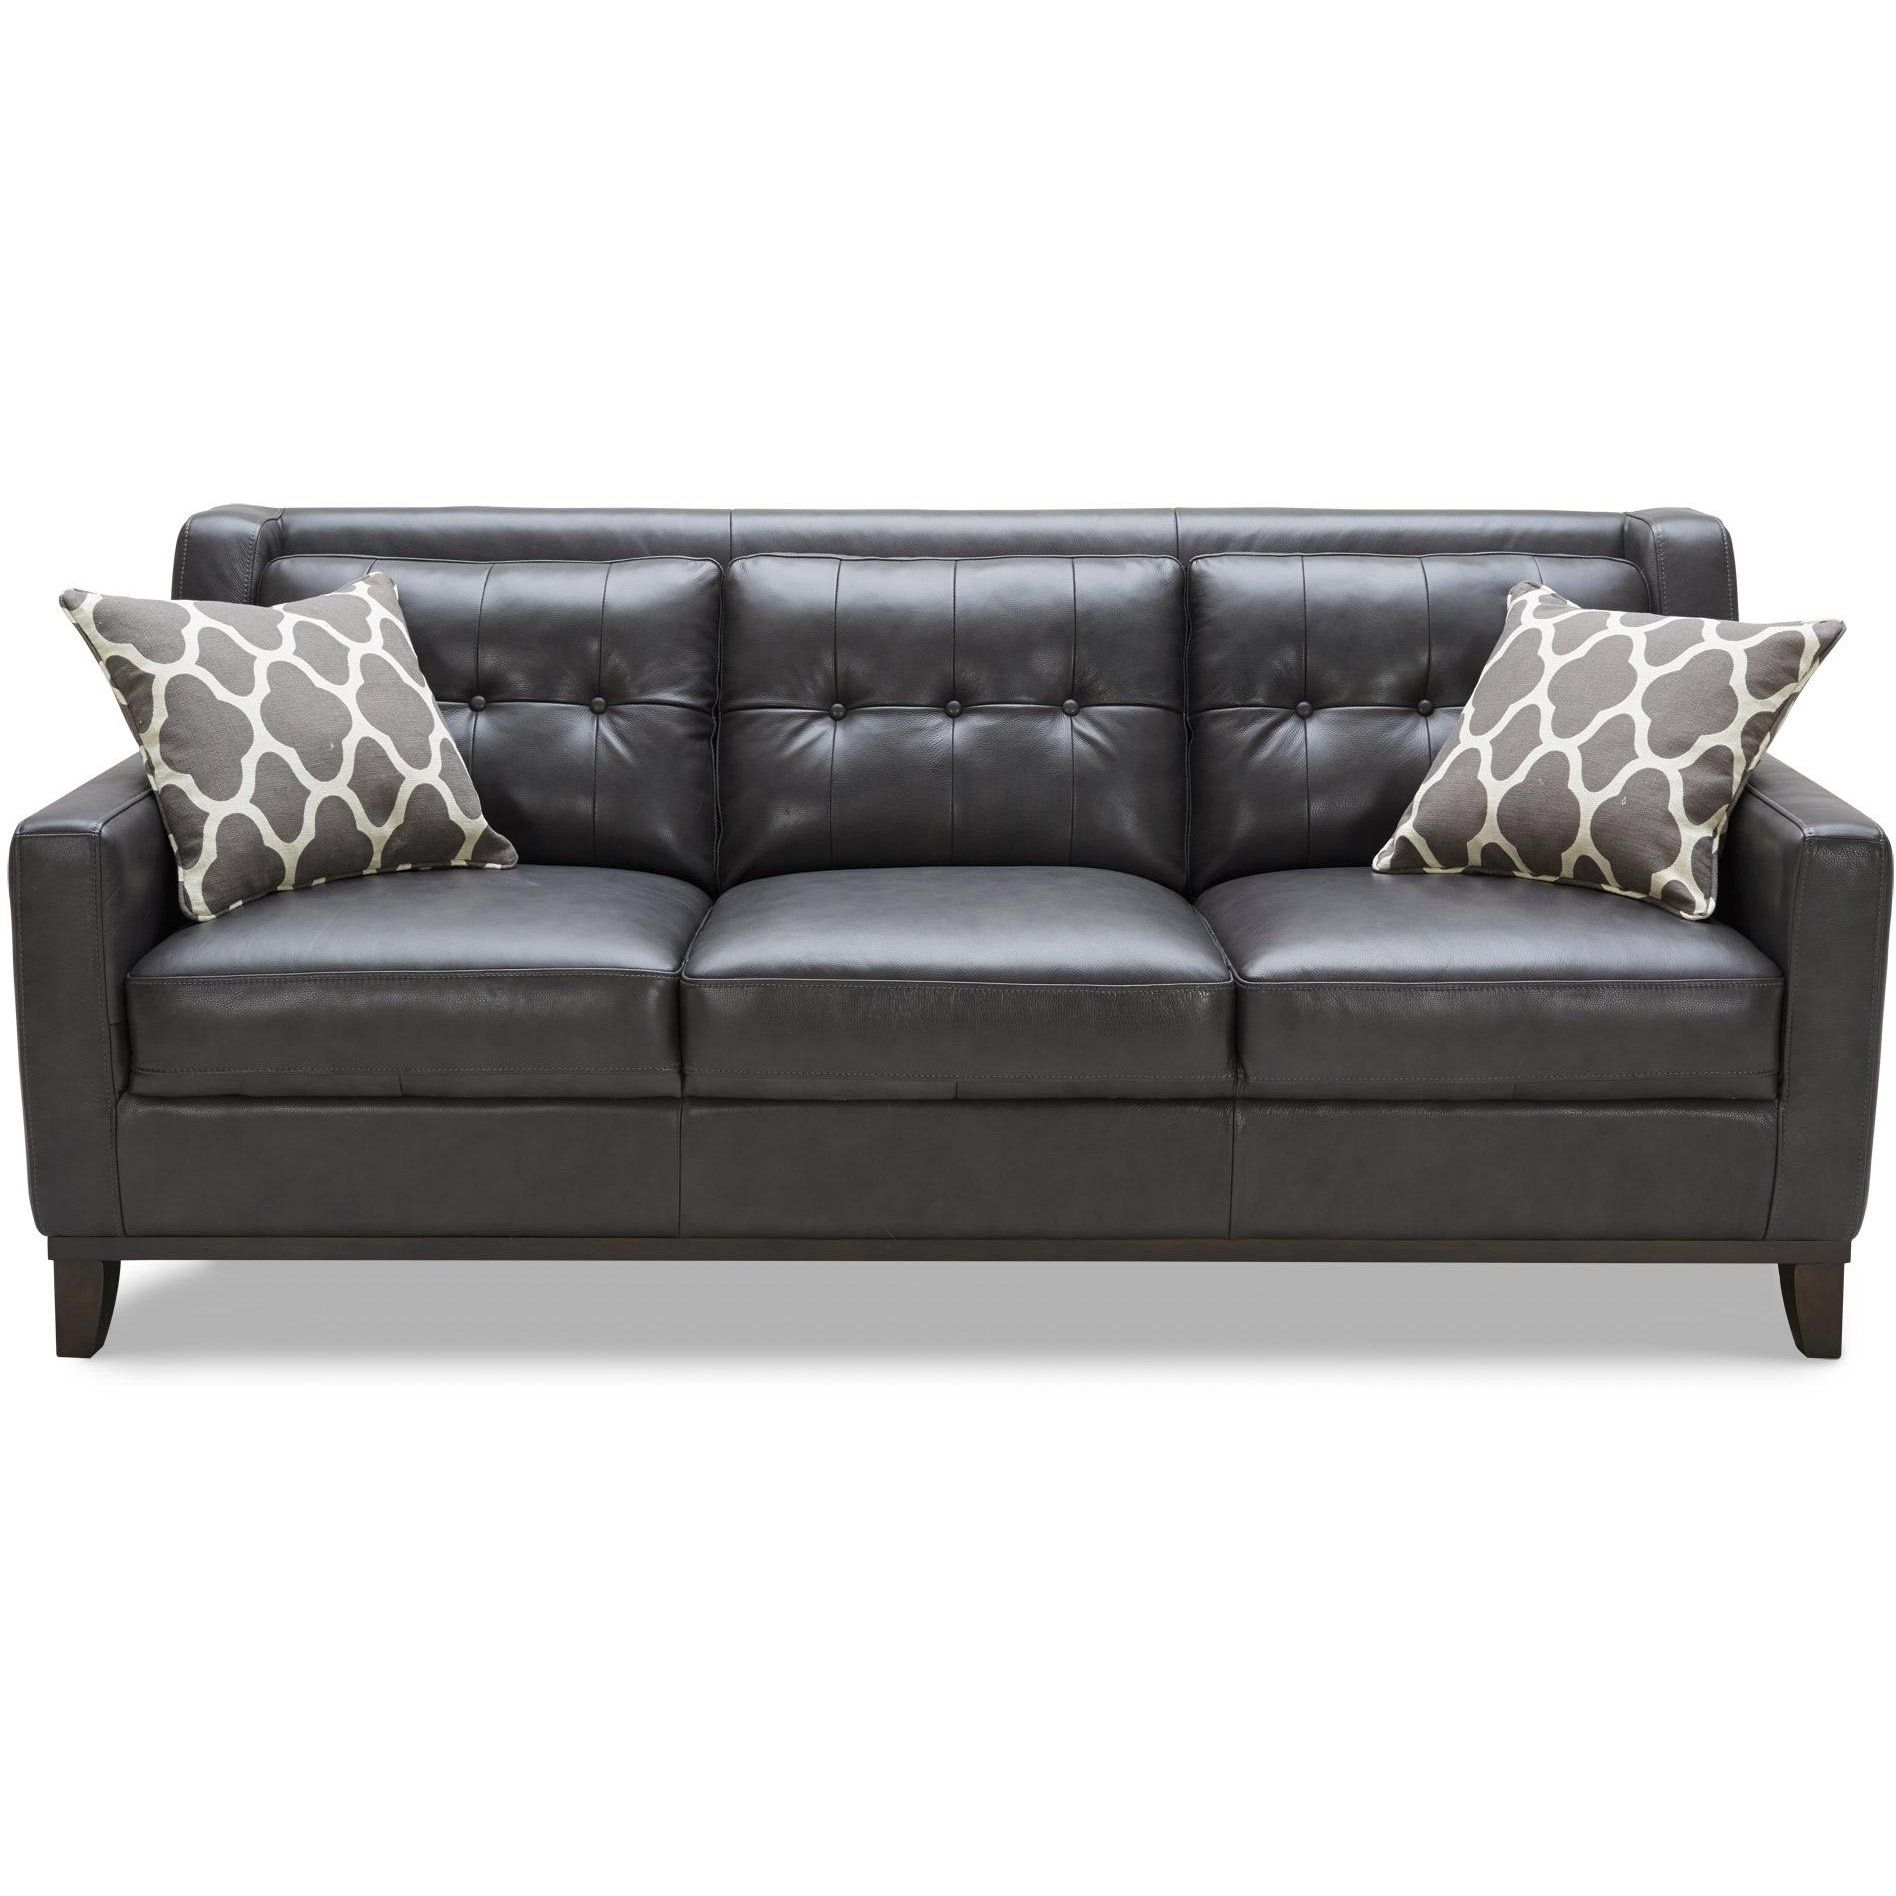 Contemporary Charcoal Leather Sofa Nigel Rc Willey Furniture Store Contemporary Leather Sofa Contemporary Sofa Grey Leather Sofa #rc #willey #living #room #furniture